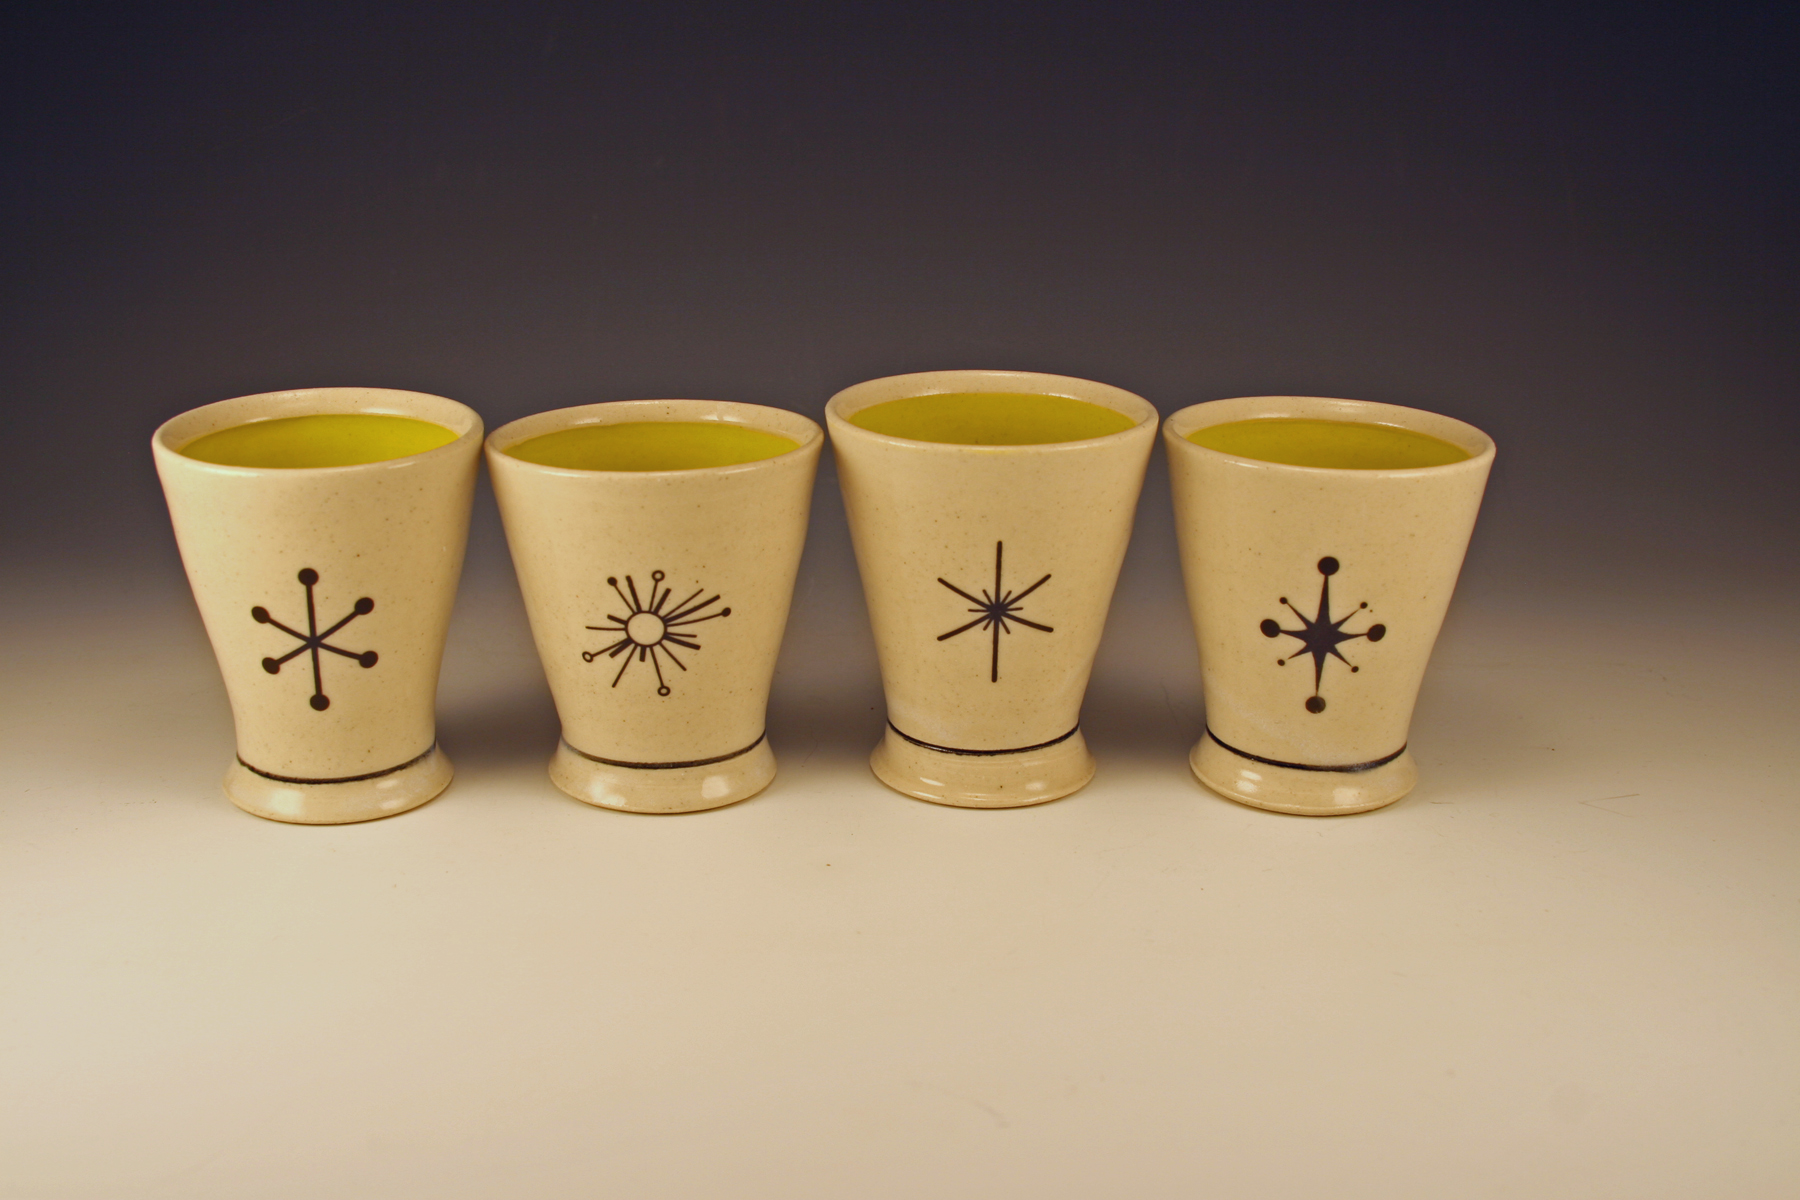 Four-star toasting cups